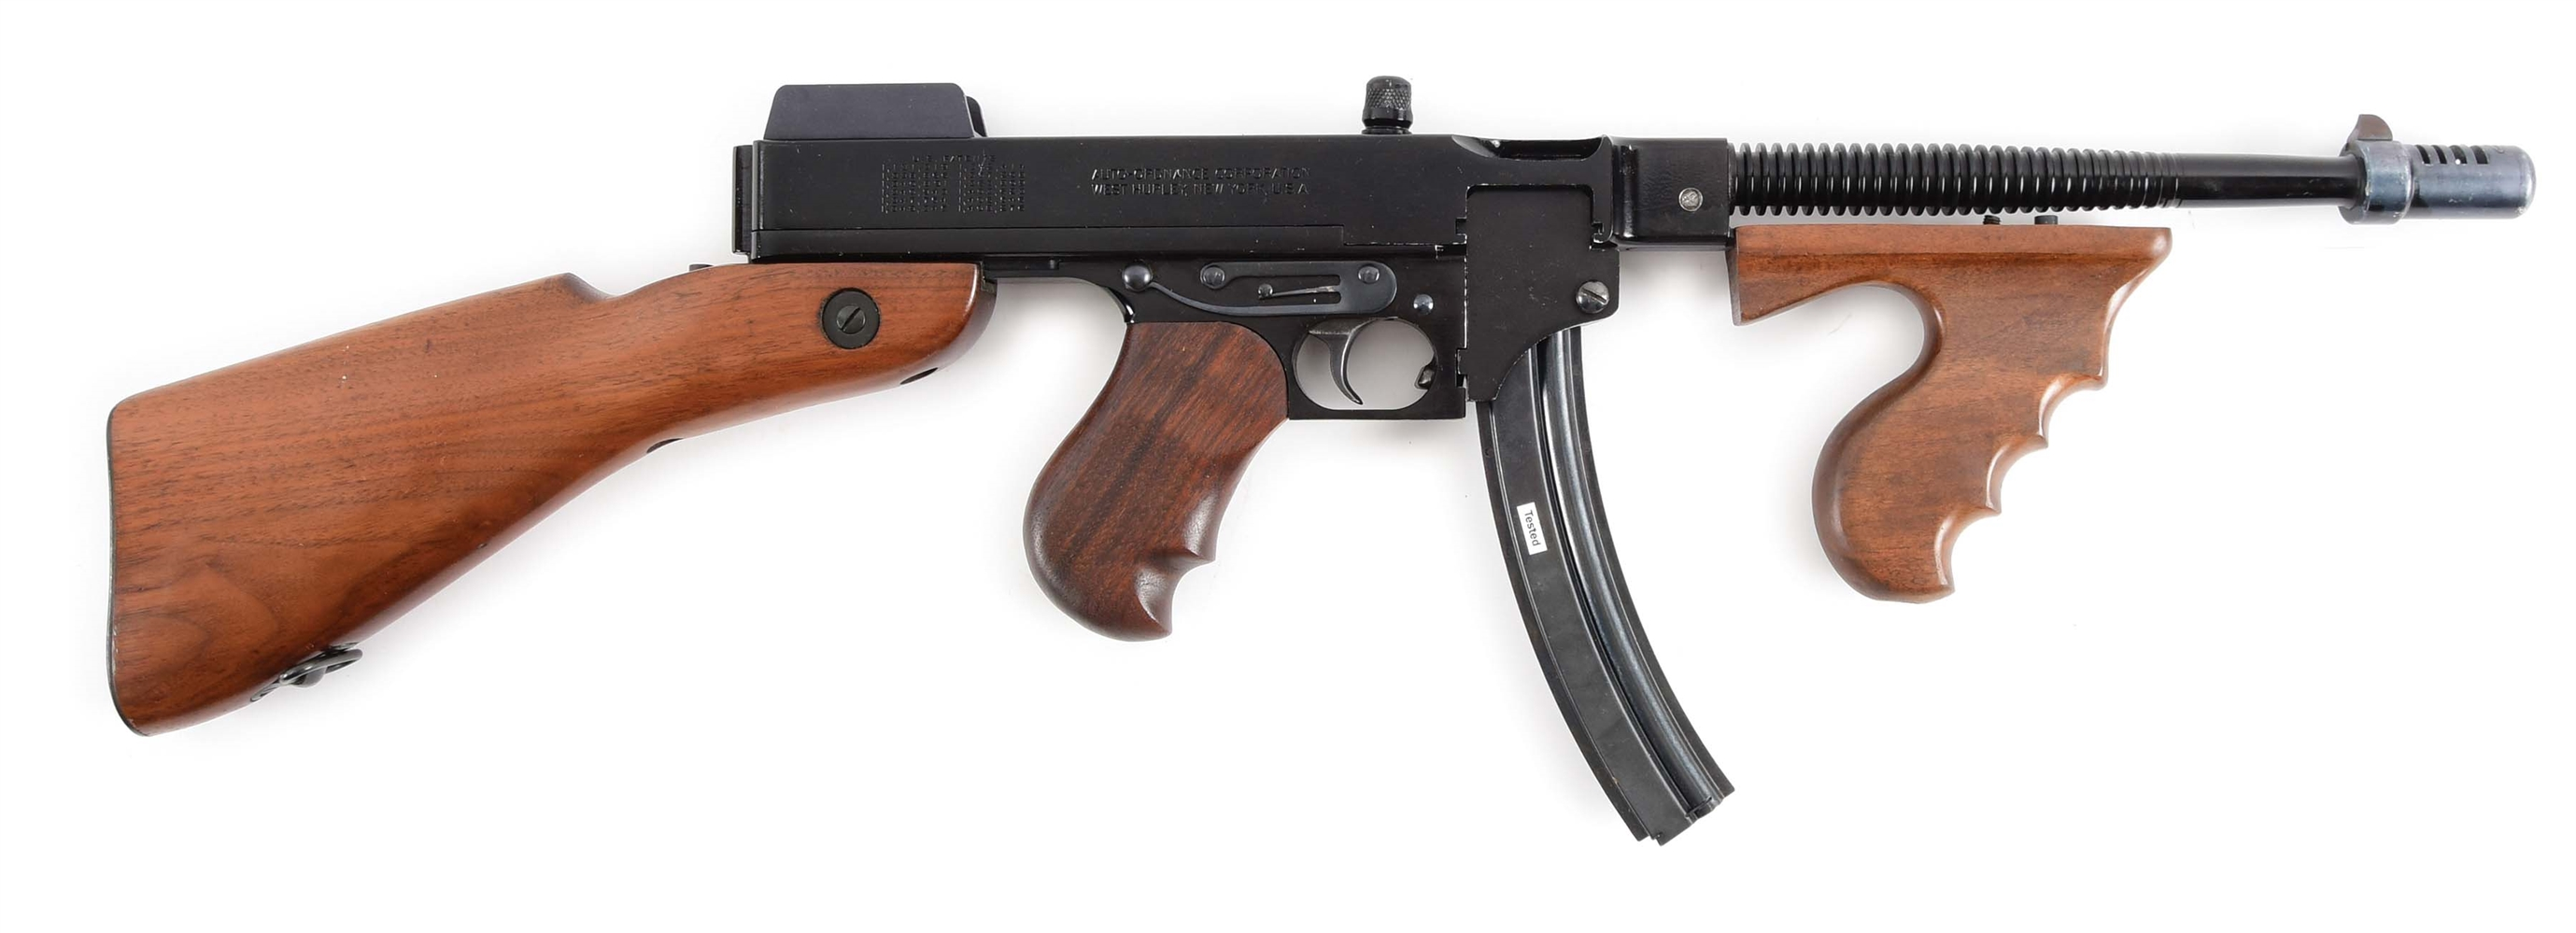 (N) SCARCE AND POPULAR AUTO ORDNANCE MODEL 1928 A22 THOMPSON MACHINE GUN IN .22 LR (CURIO AND RELIC).